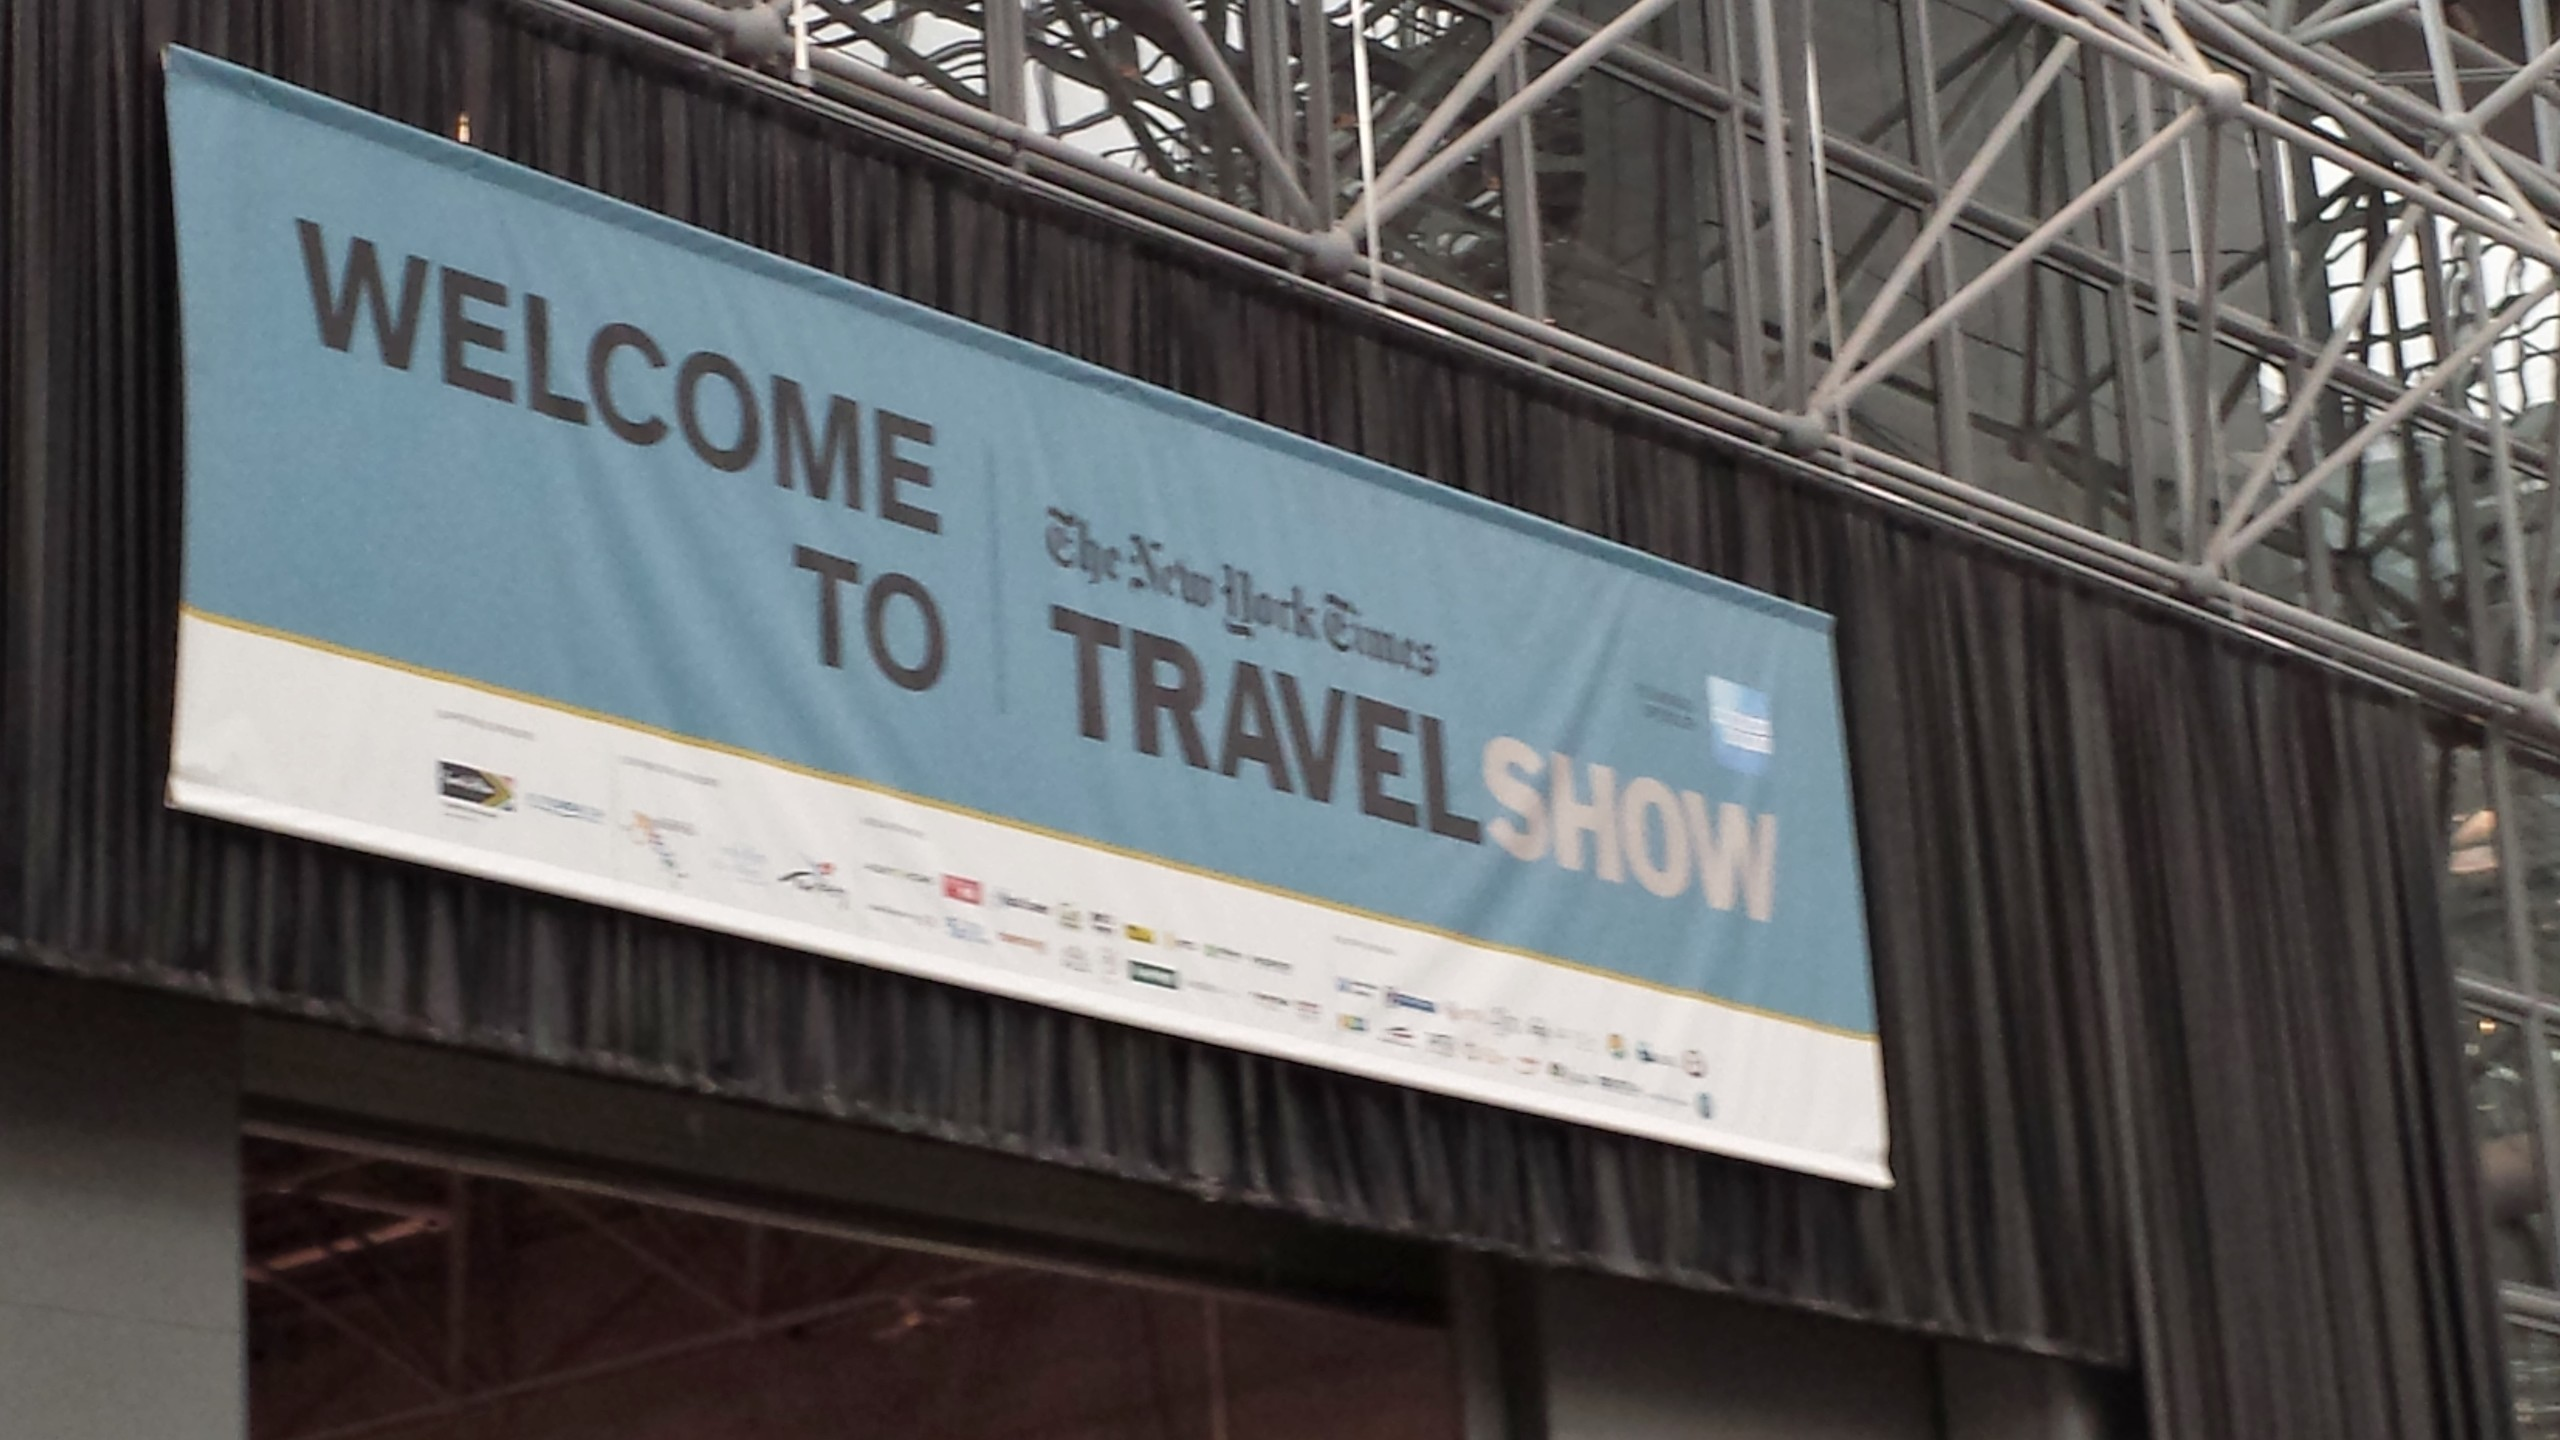 NY Times Travel Show Banner